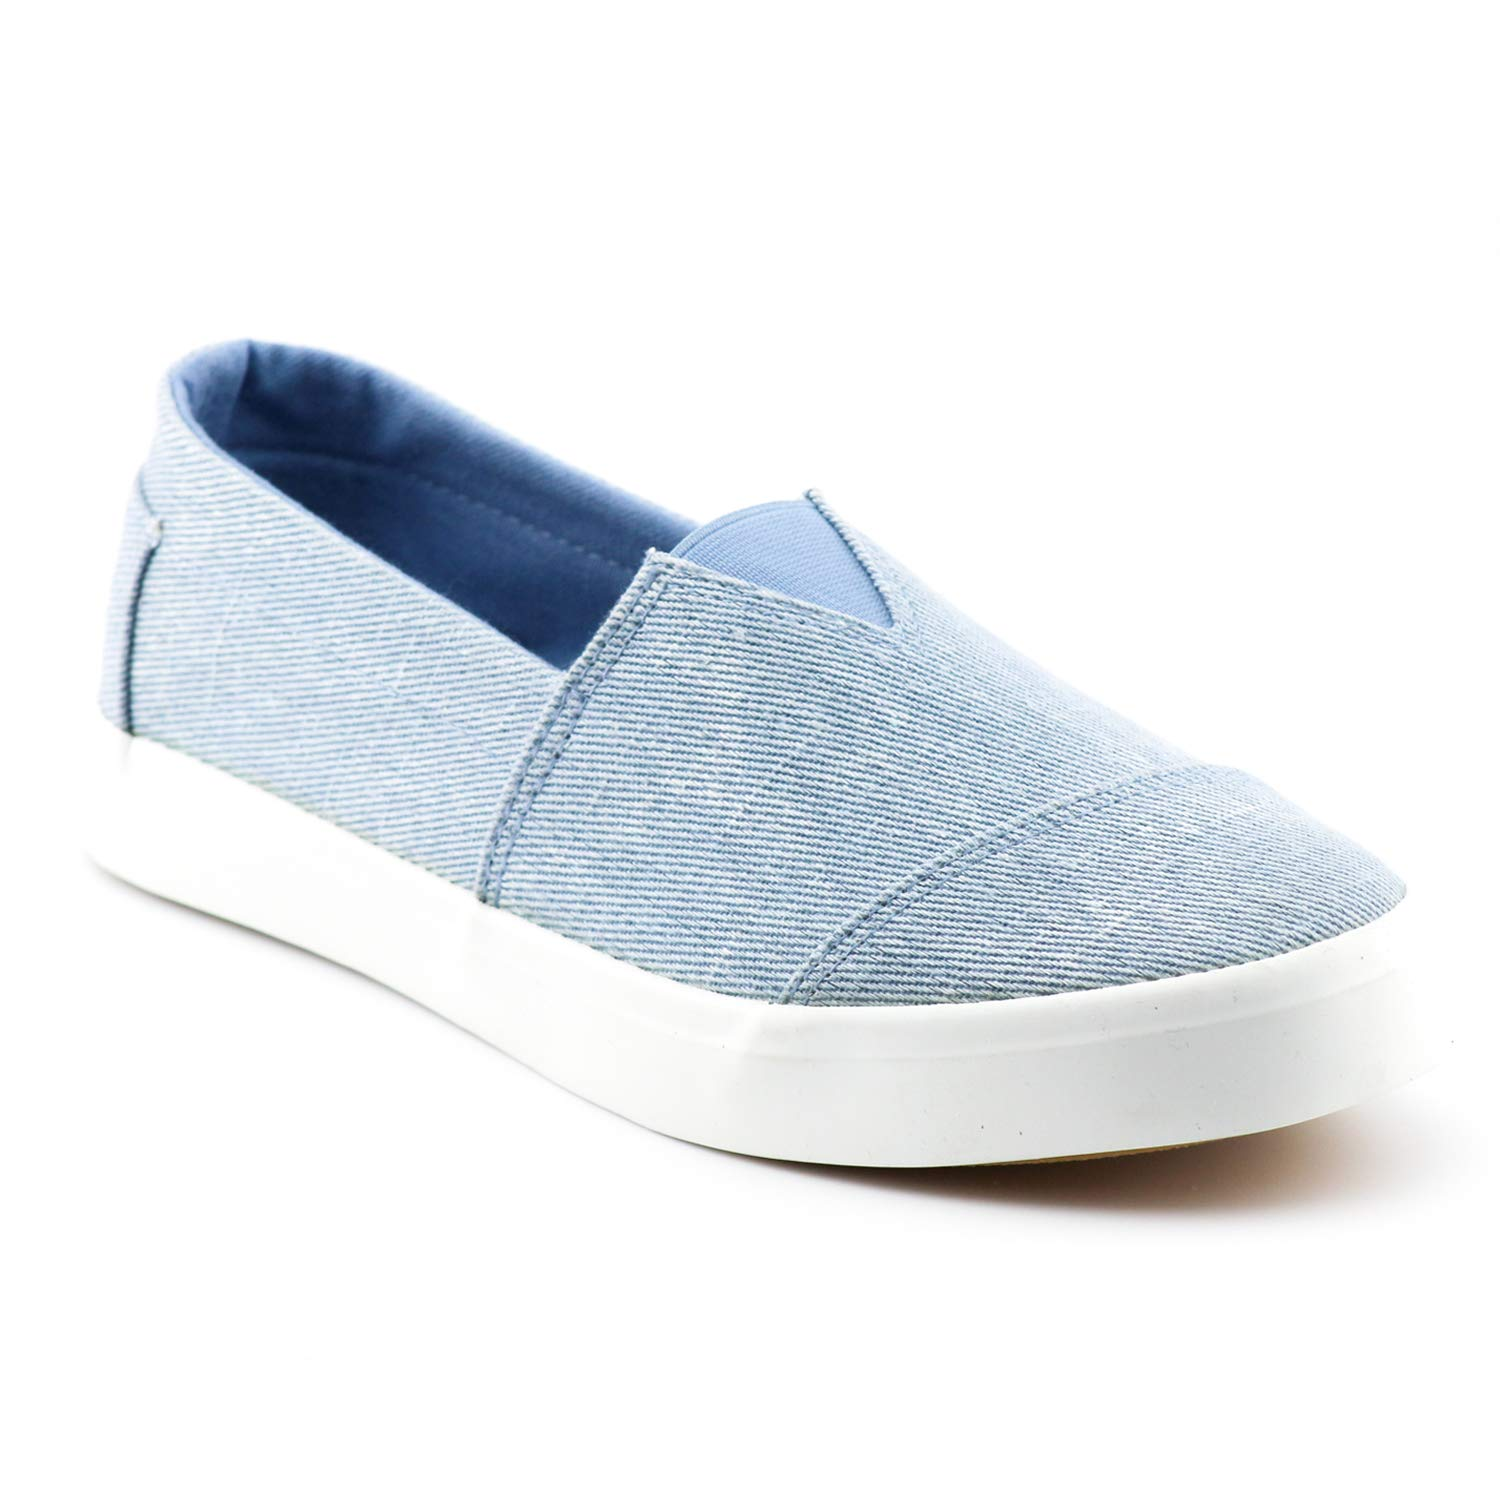 Women's Fashion Classic Sneakers Slip On Loafers Casual Sport Athletic Shoes Flats LE02 Denim 10